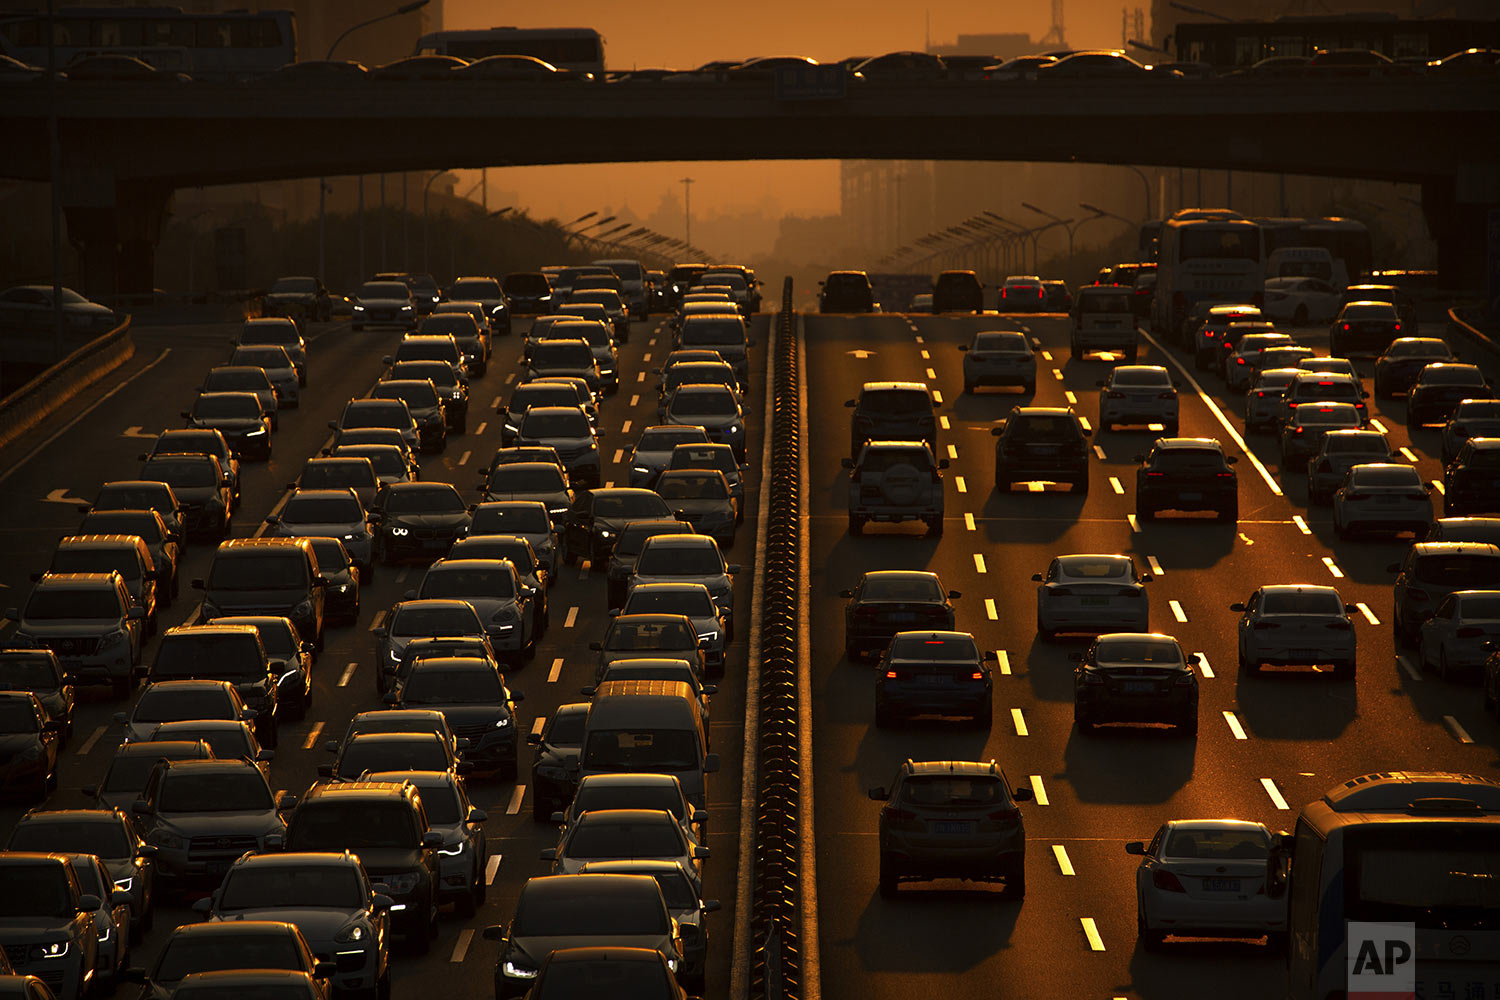 Commuters make their way along an expressway during rush hour in Beijing, Friday, Sept. 6, 2019. (AP Photo/Mark Schiefelbein)